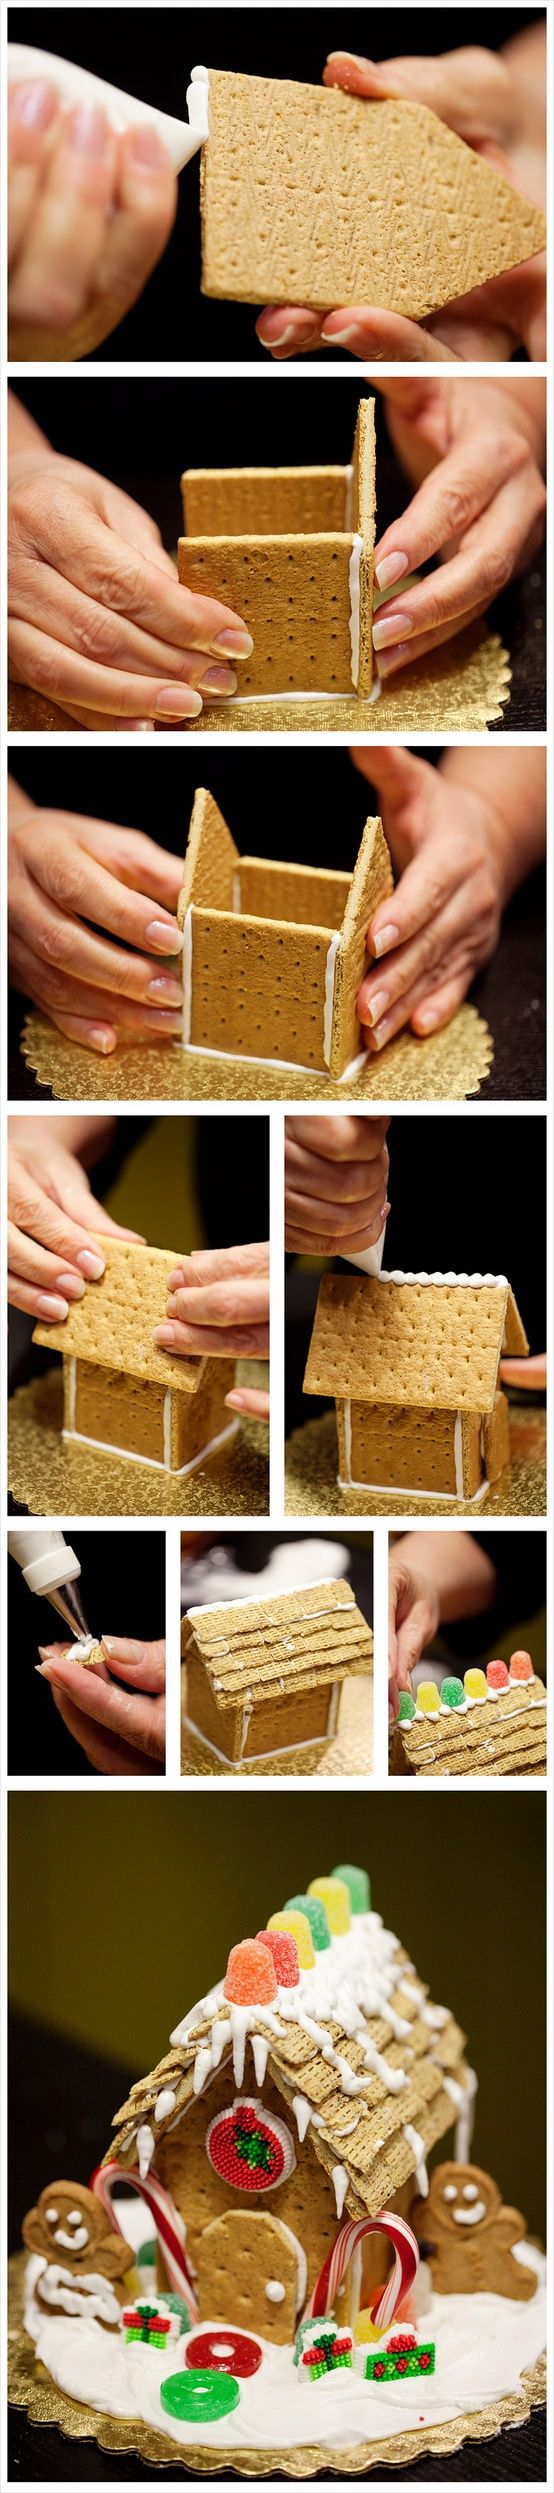 DIY: Gingerbread House made out of graham crackers